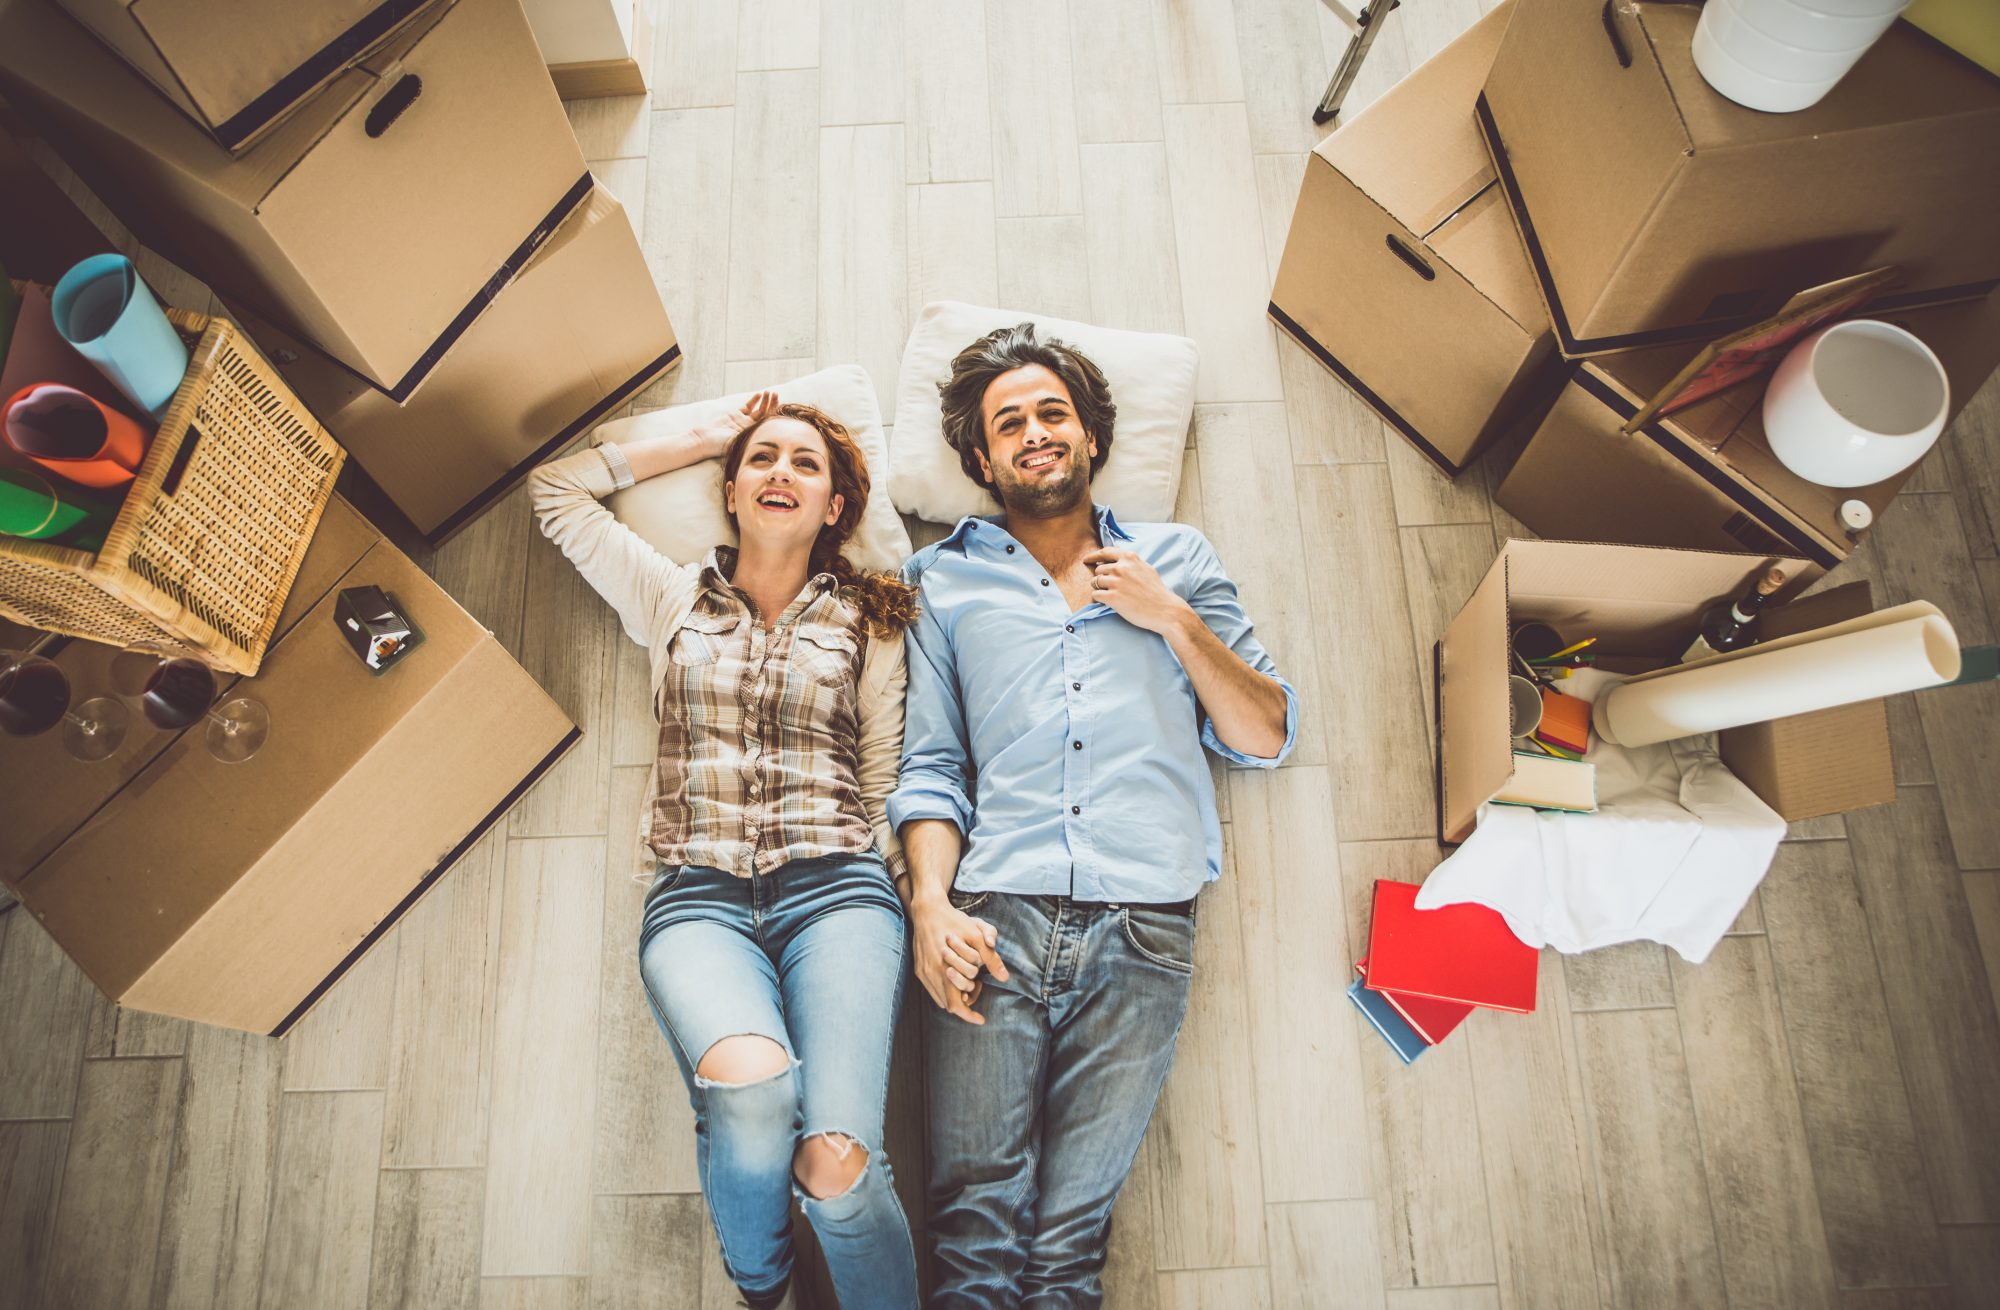 Couple take a break from packing to rest on floor surrounded by unpacked boxes.